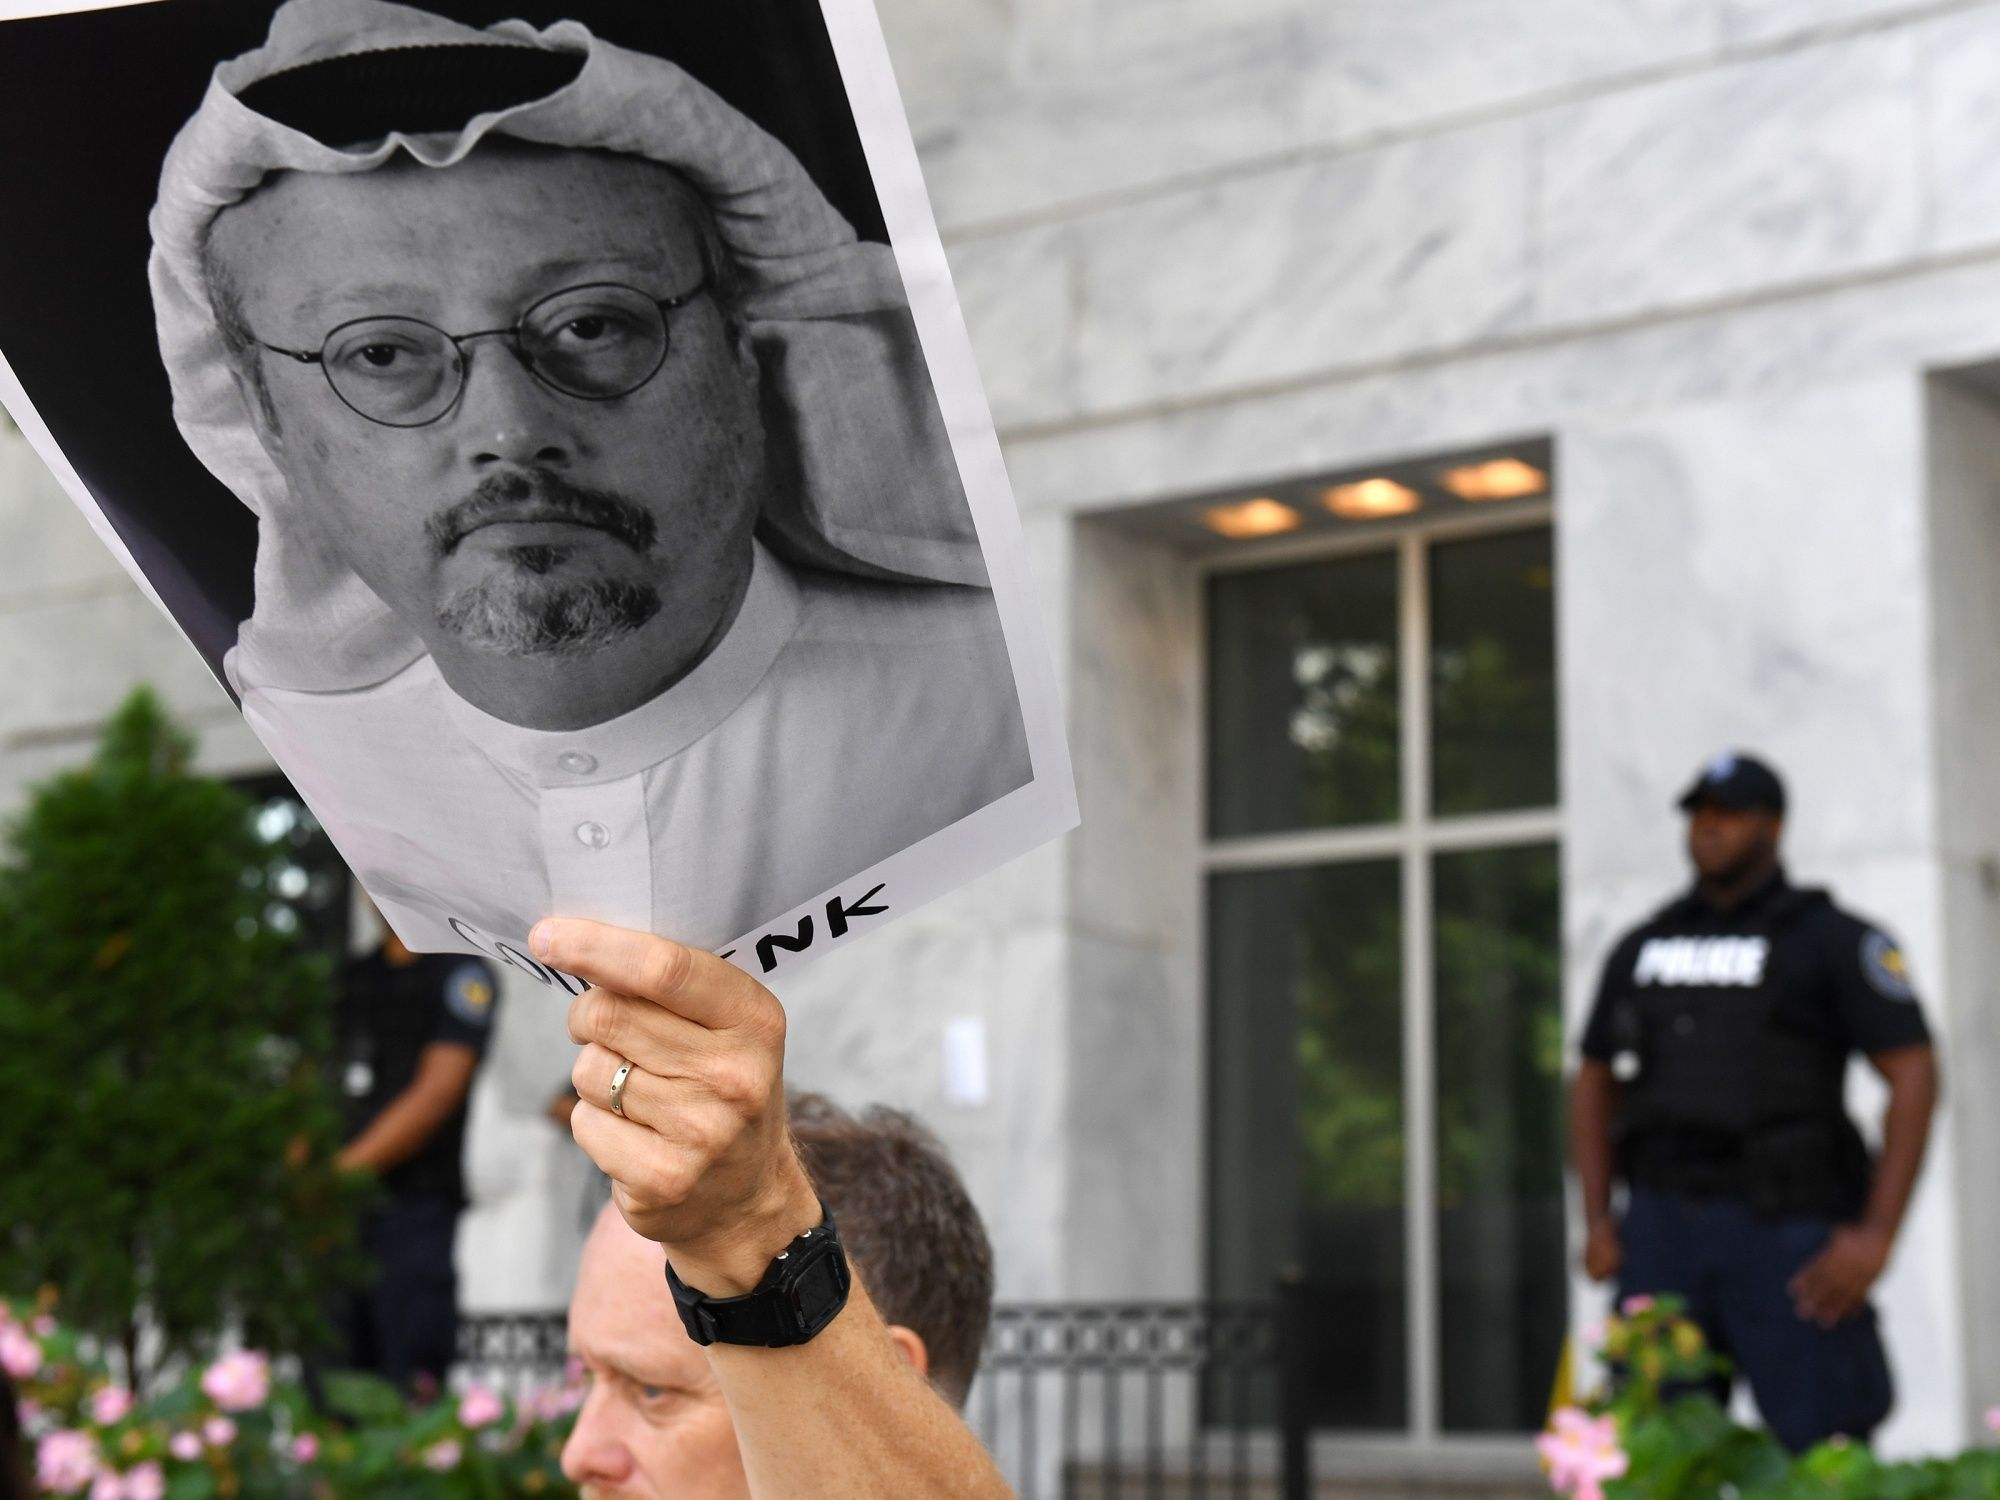 Five Sentenced to Death in Khashoggi Murder, Royal Aides Cleared